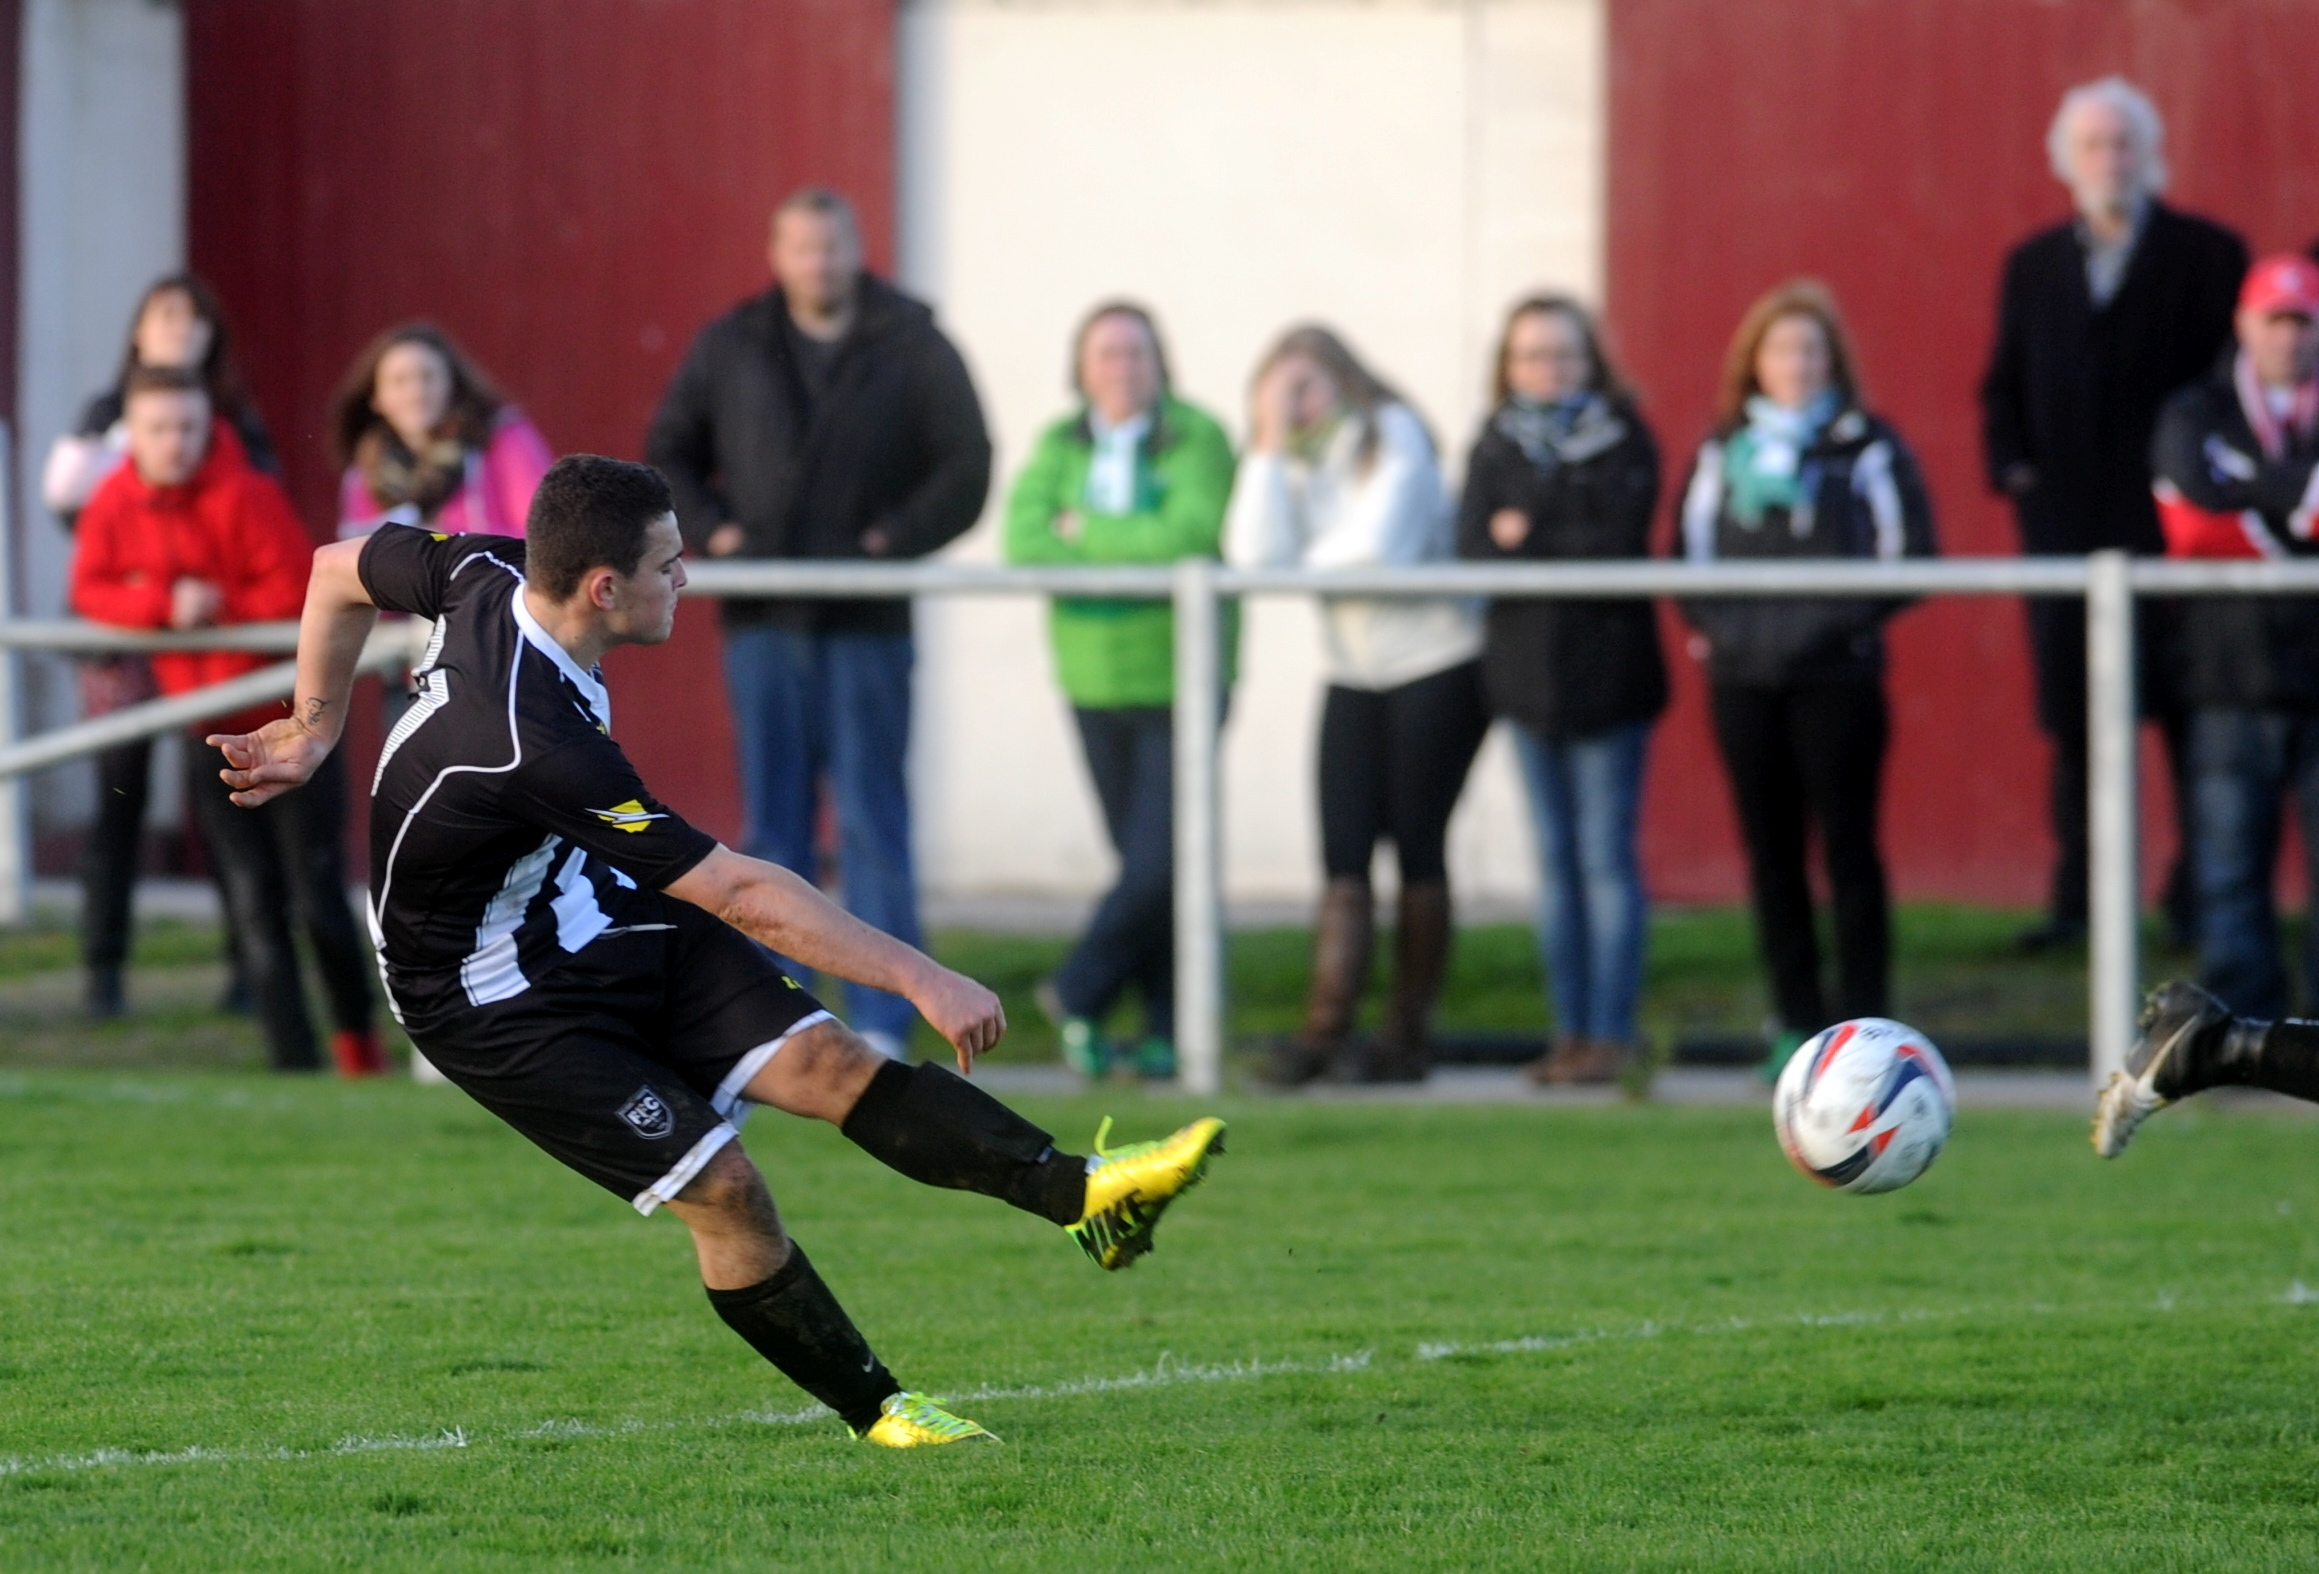 Scott Barbour in action during his first spell with Fraserburgh. Picture by DARRELL BENNS.